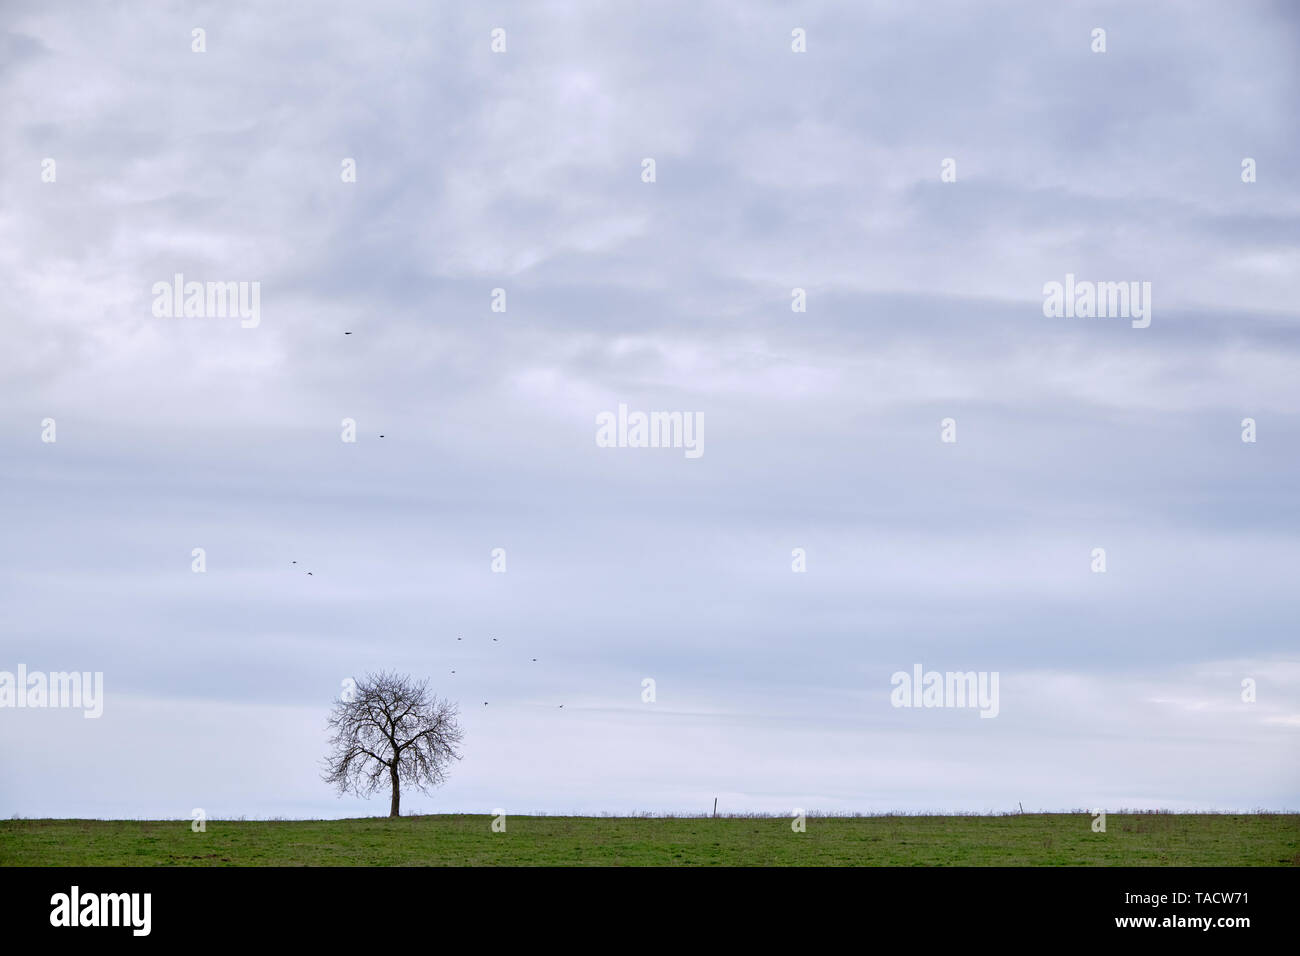 Minimalist landscape with lonely bare tree on a meadow with some little birds around in the bright grey sky with clouds. Seen in Germany in March - Stock Image